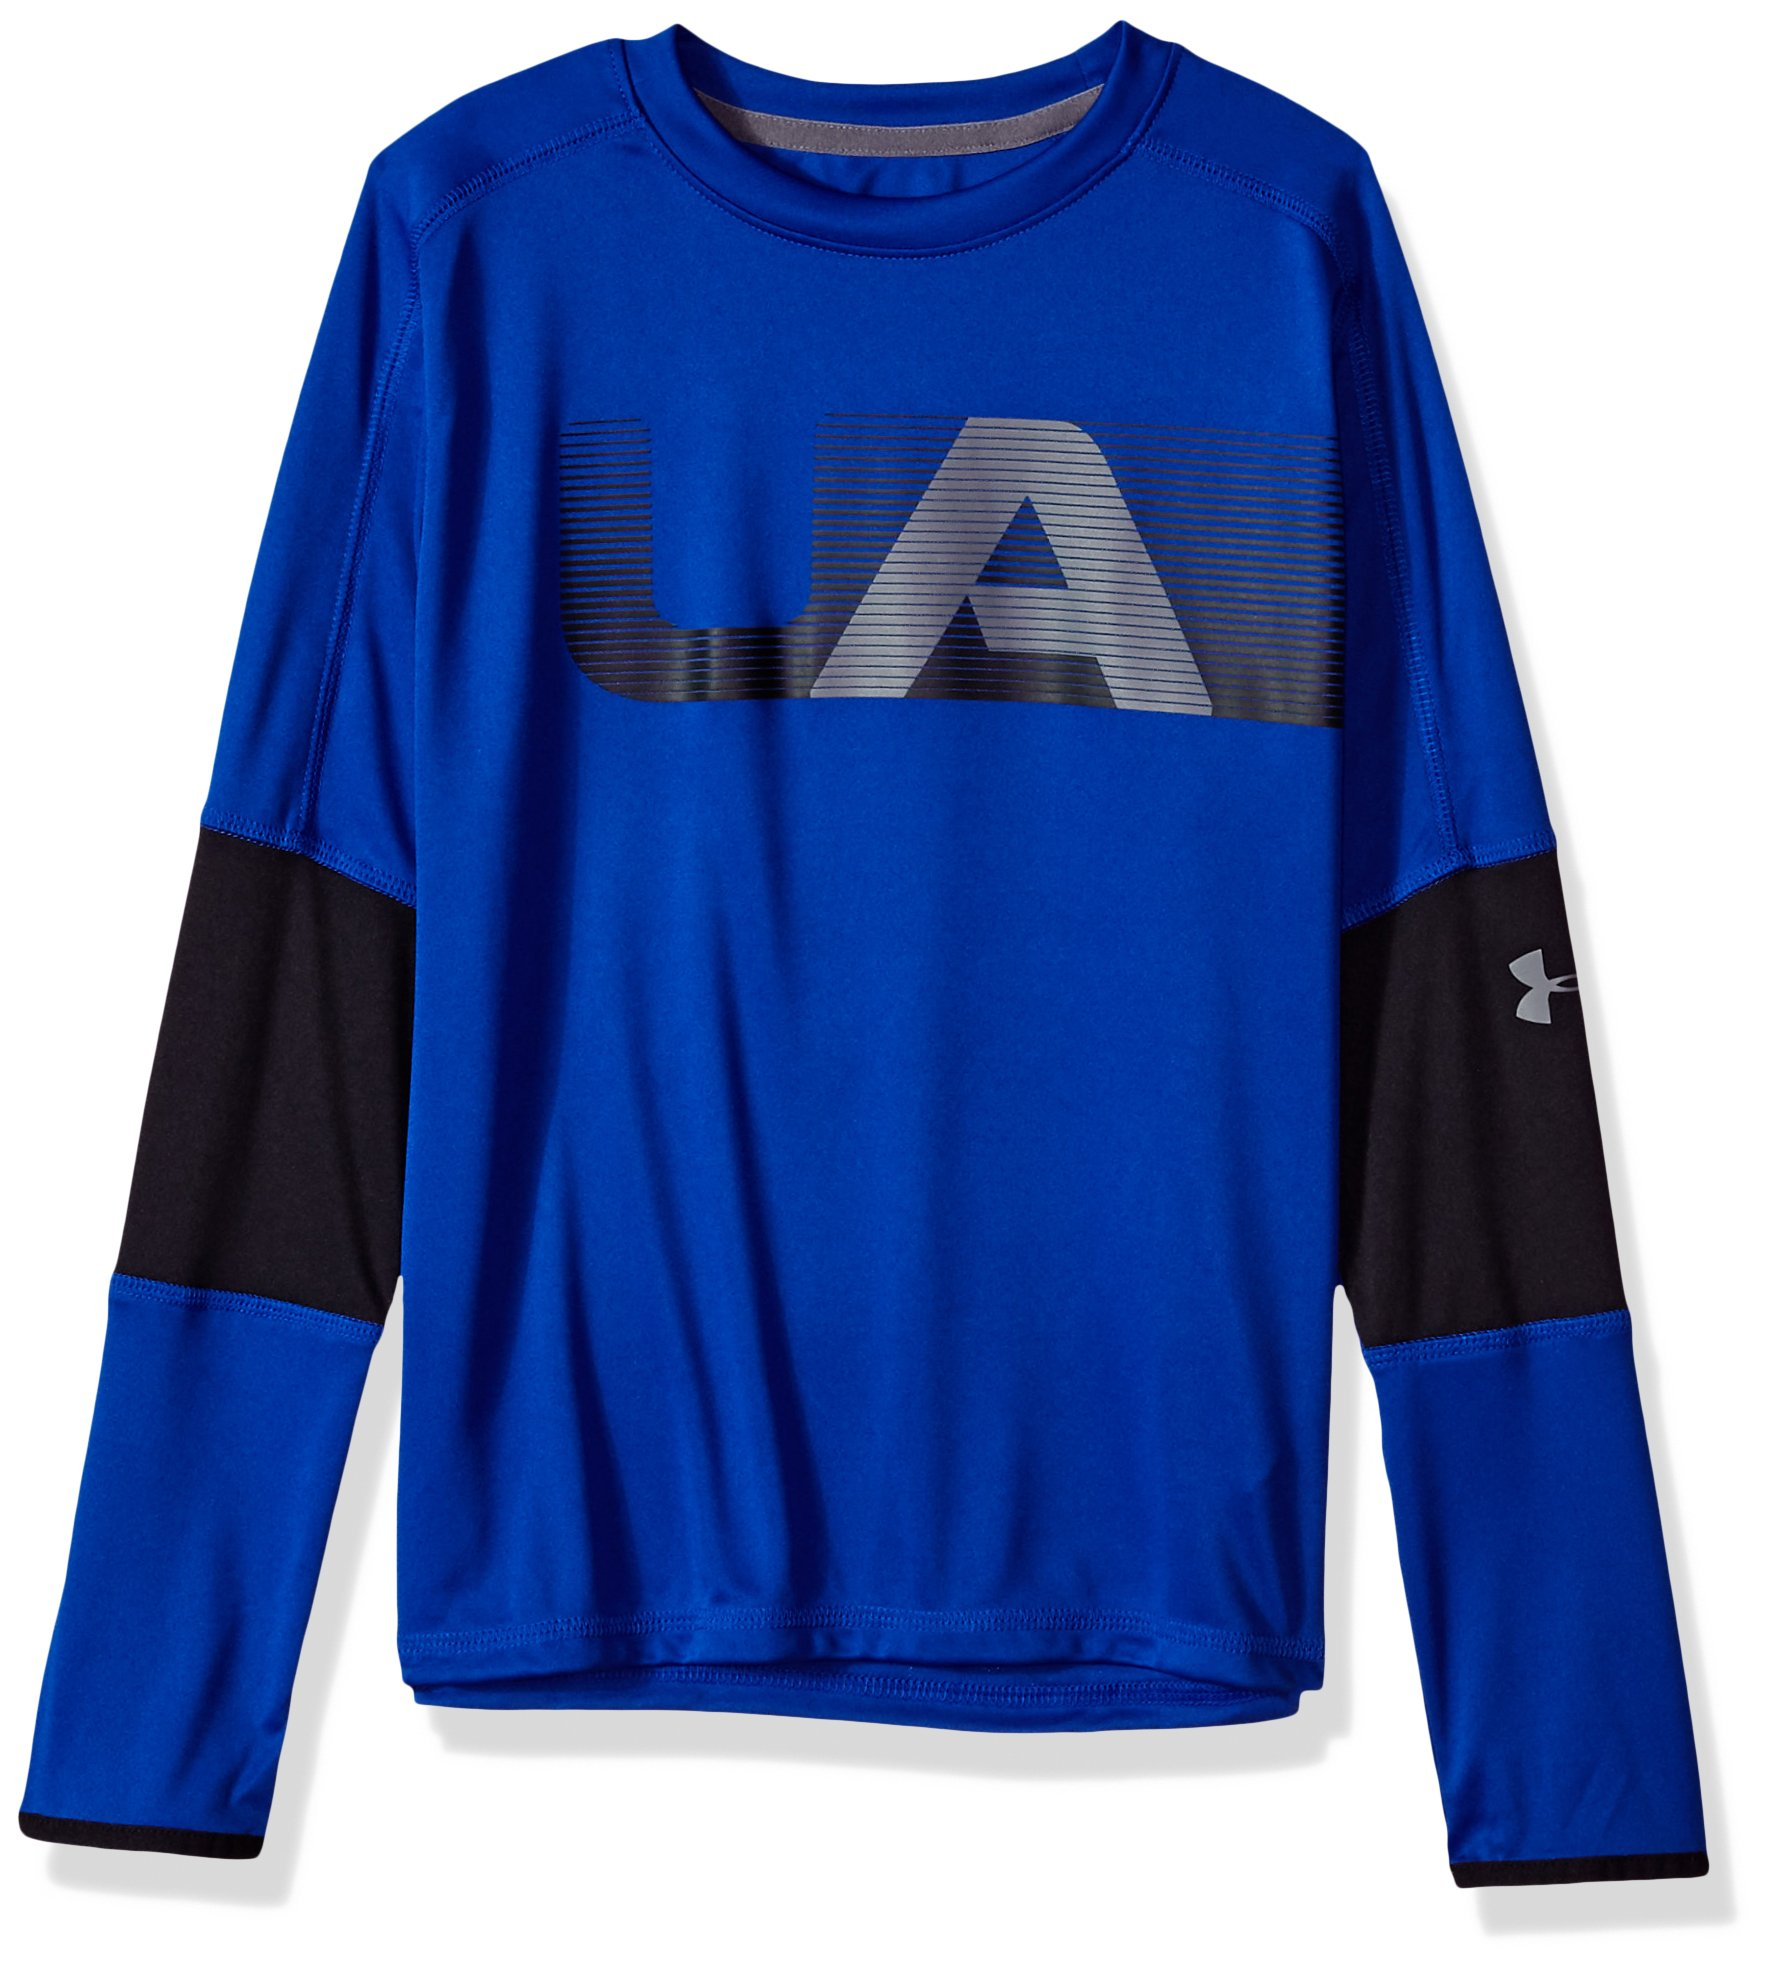 Under Armour Boys Tech Long sleeve Tee, Royal (400)/Graphite, Youth X-Small by Under Armour